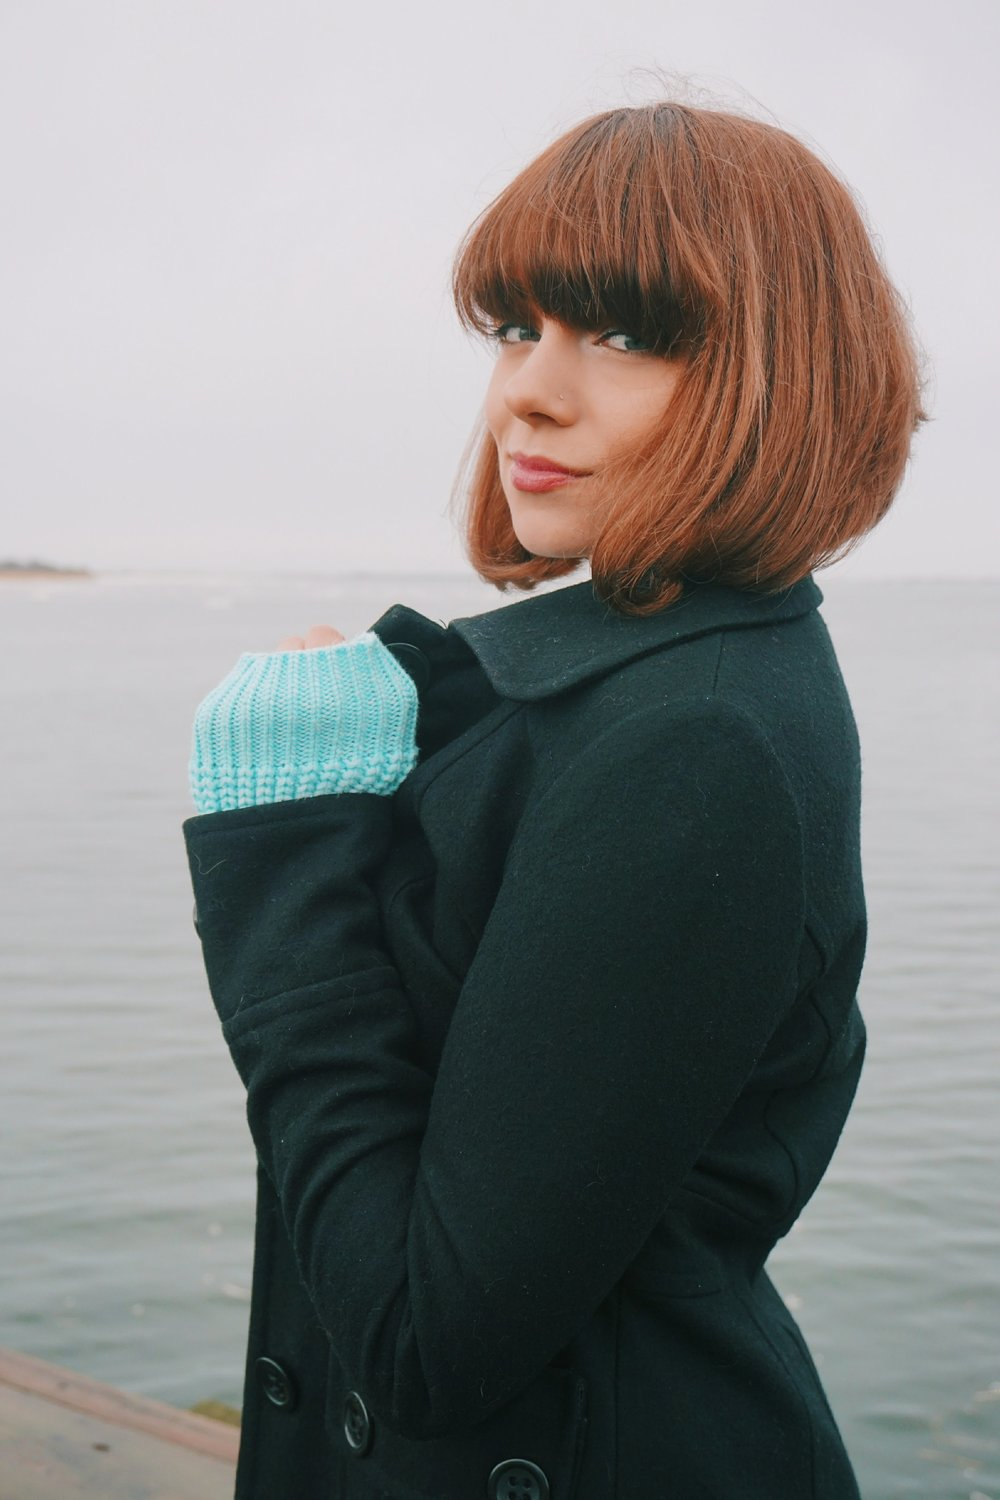 A portrait of a fashion blogger with short bob and bangs, who is wearing a blue sweater and a black coat in the photo.